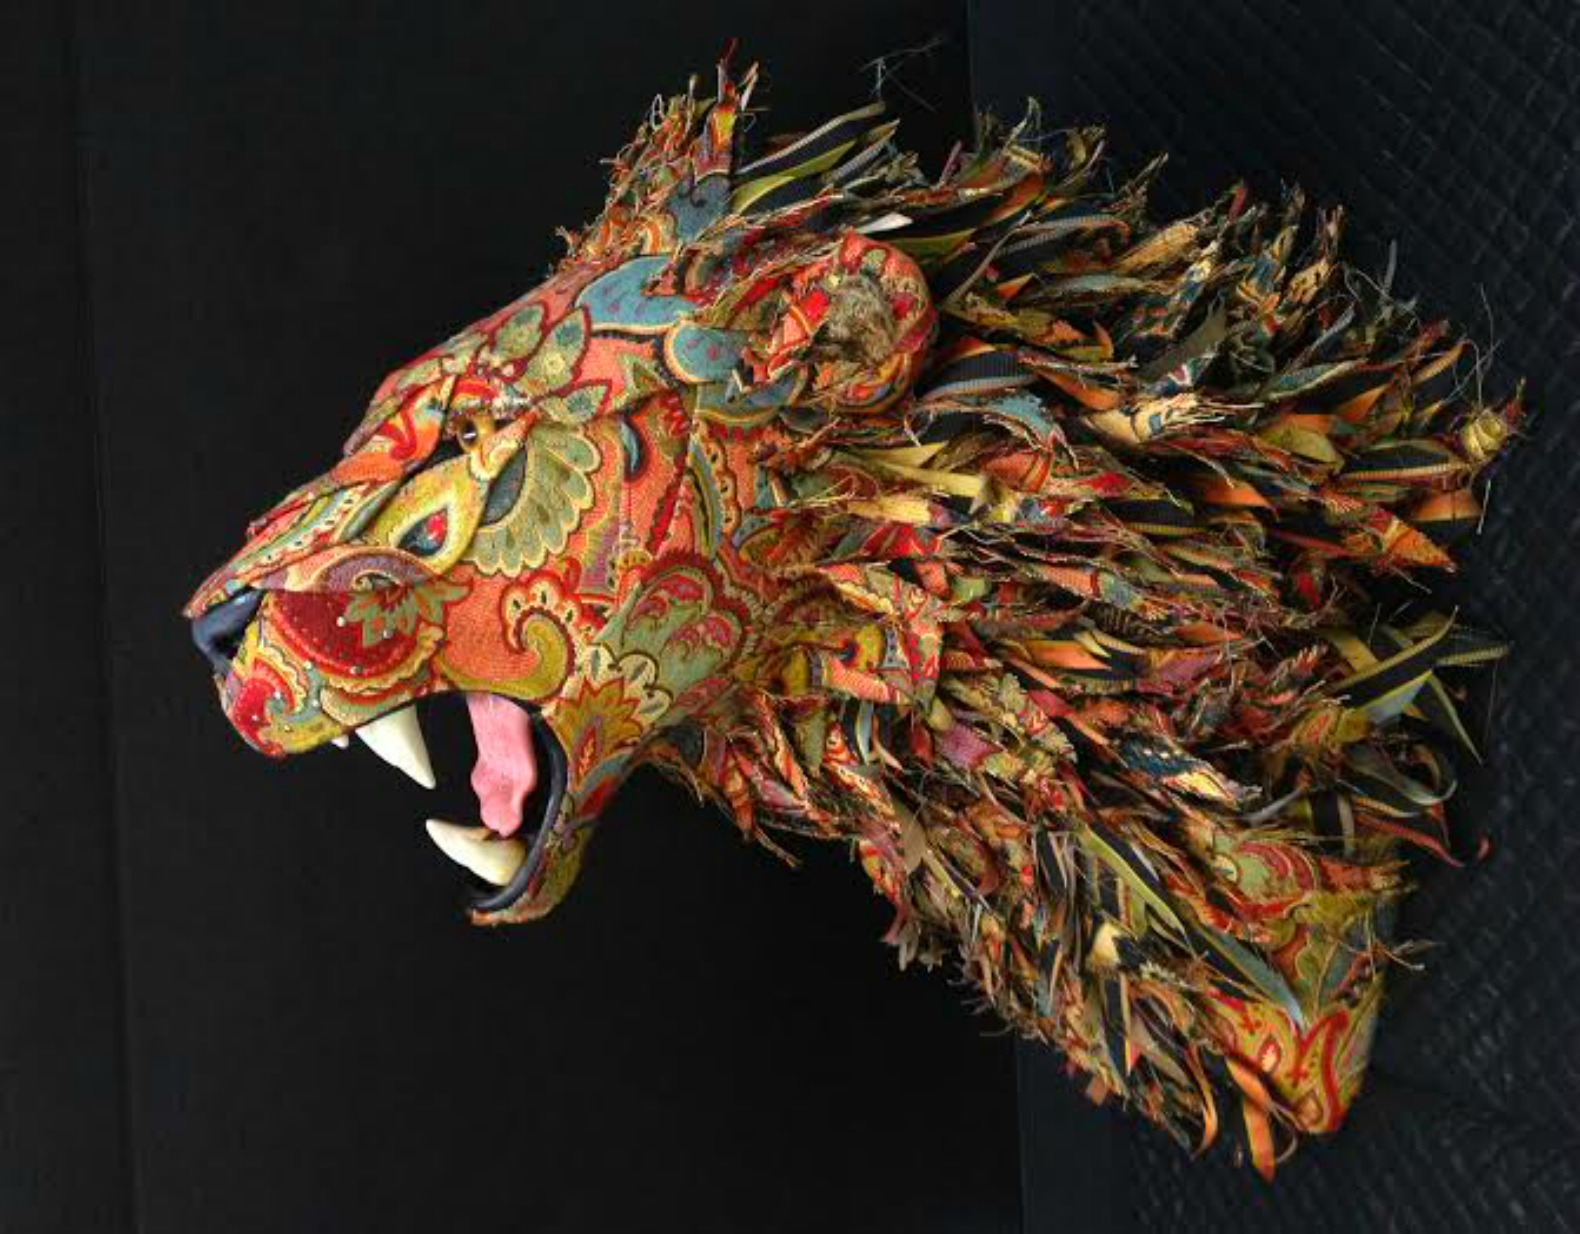 Artist Makes Life Sized Faux Taxidermy Animals From Upcycled Fabric